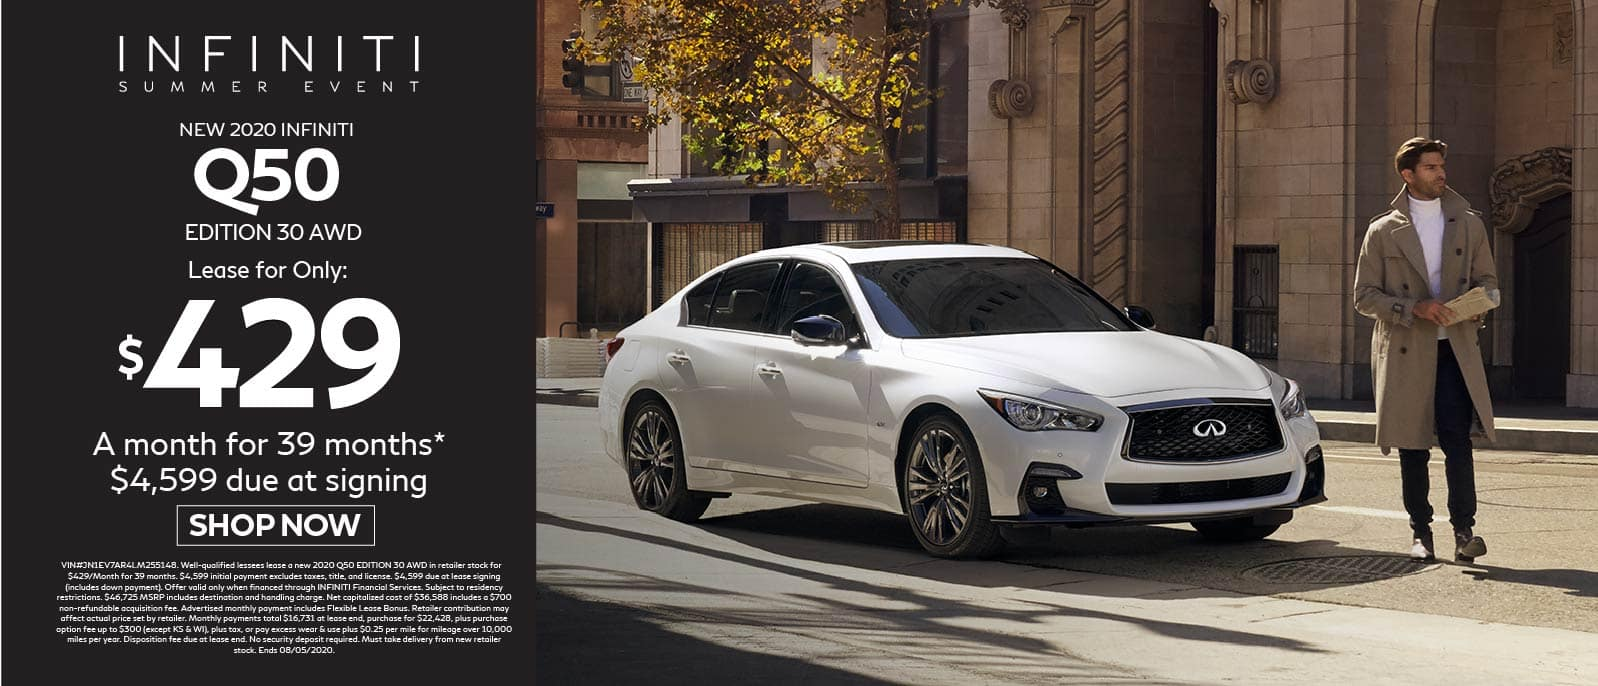 2020 INFINITI Q50 Edition 30 AWD $429 a month for 39 months $4599 due at signing. Shop now